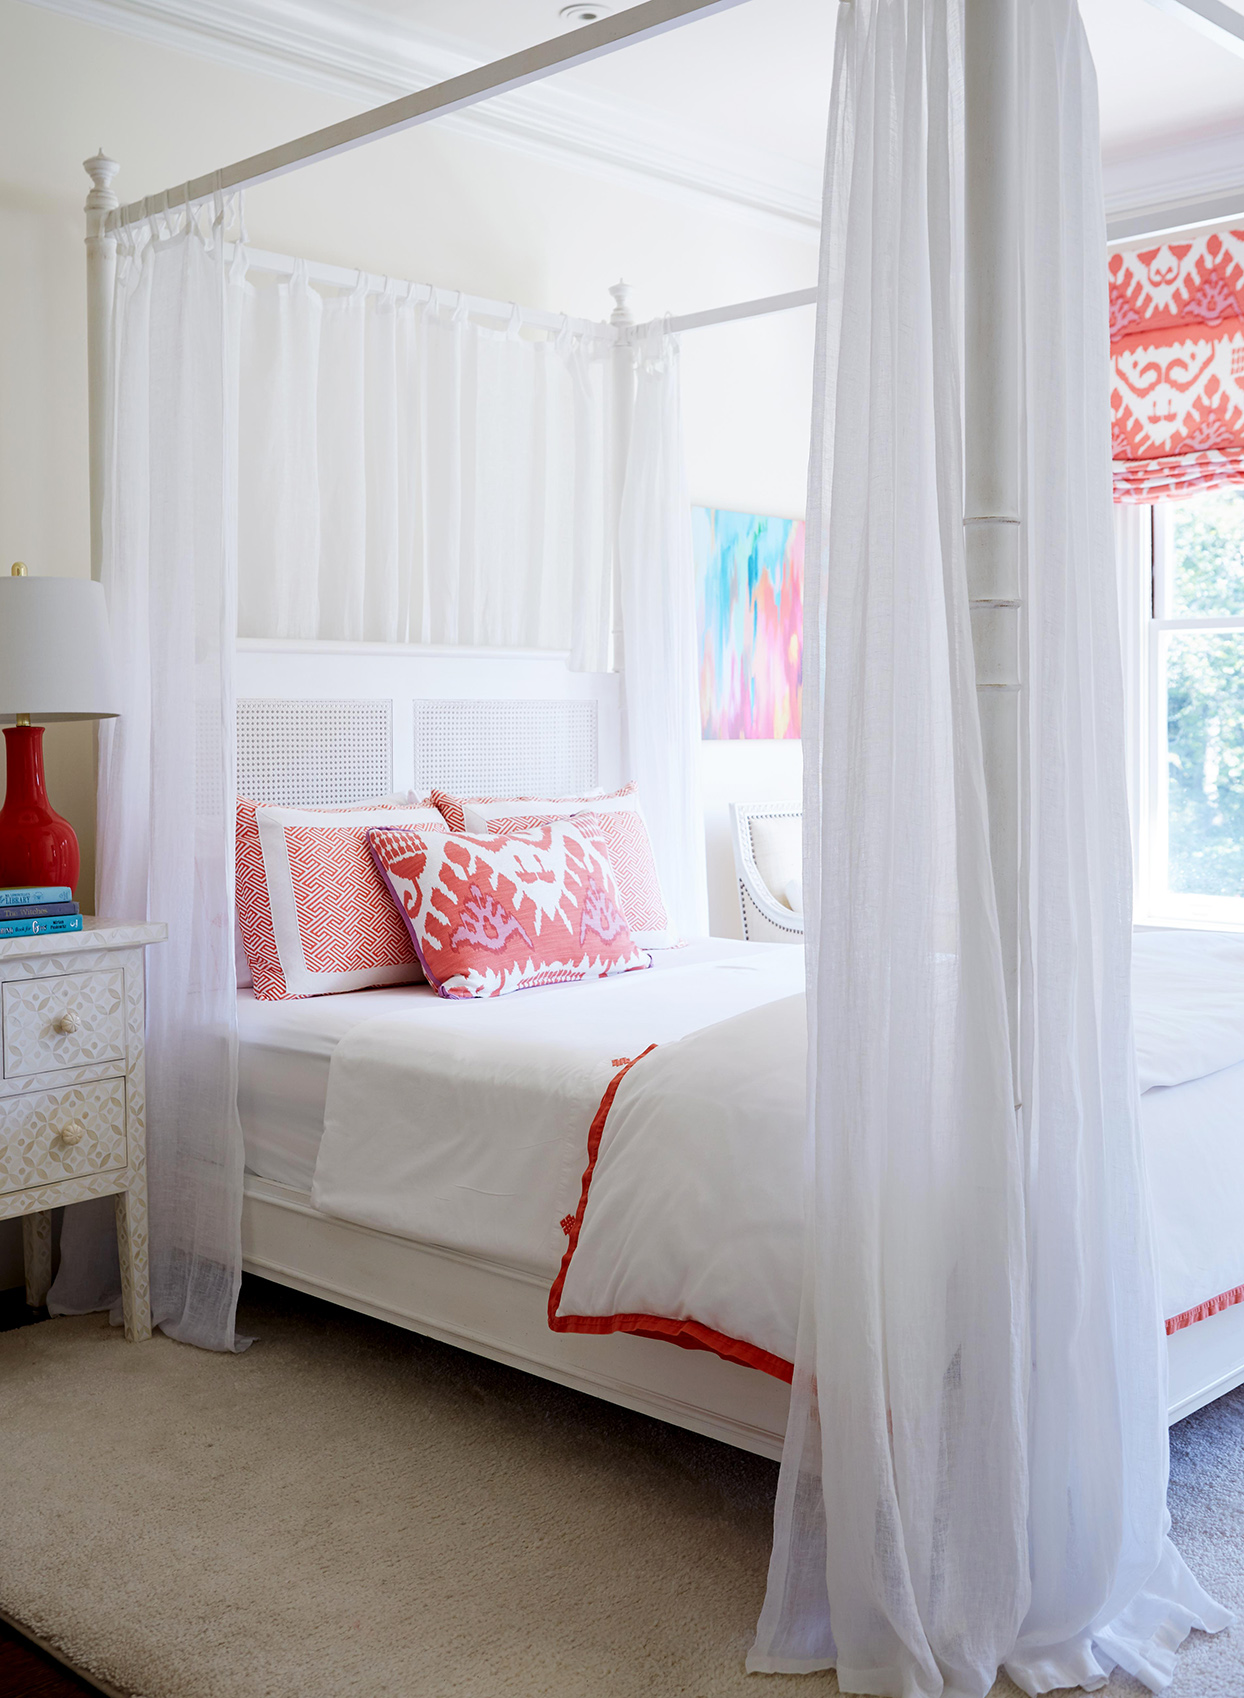 White bedroom with sheer curtains